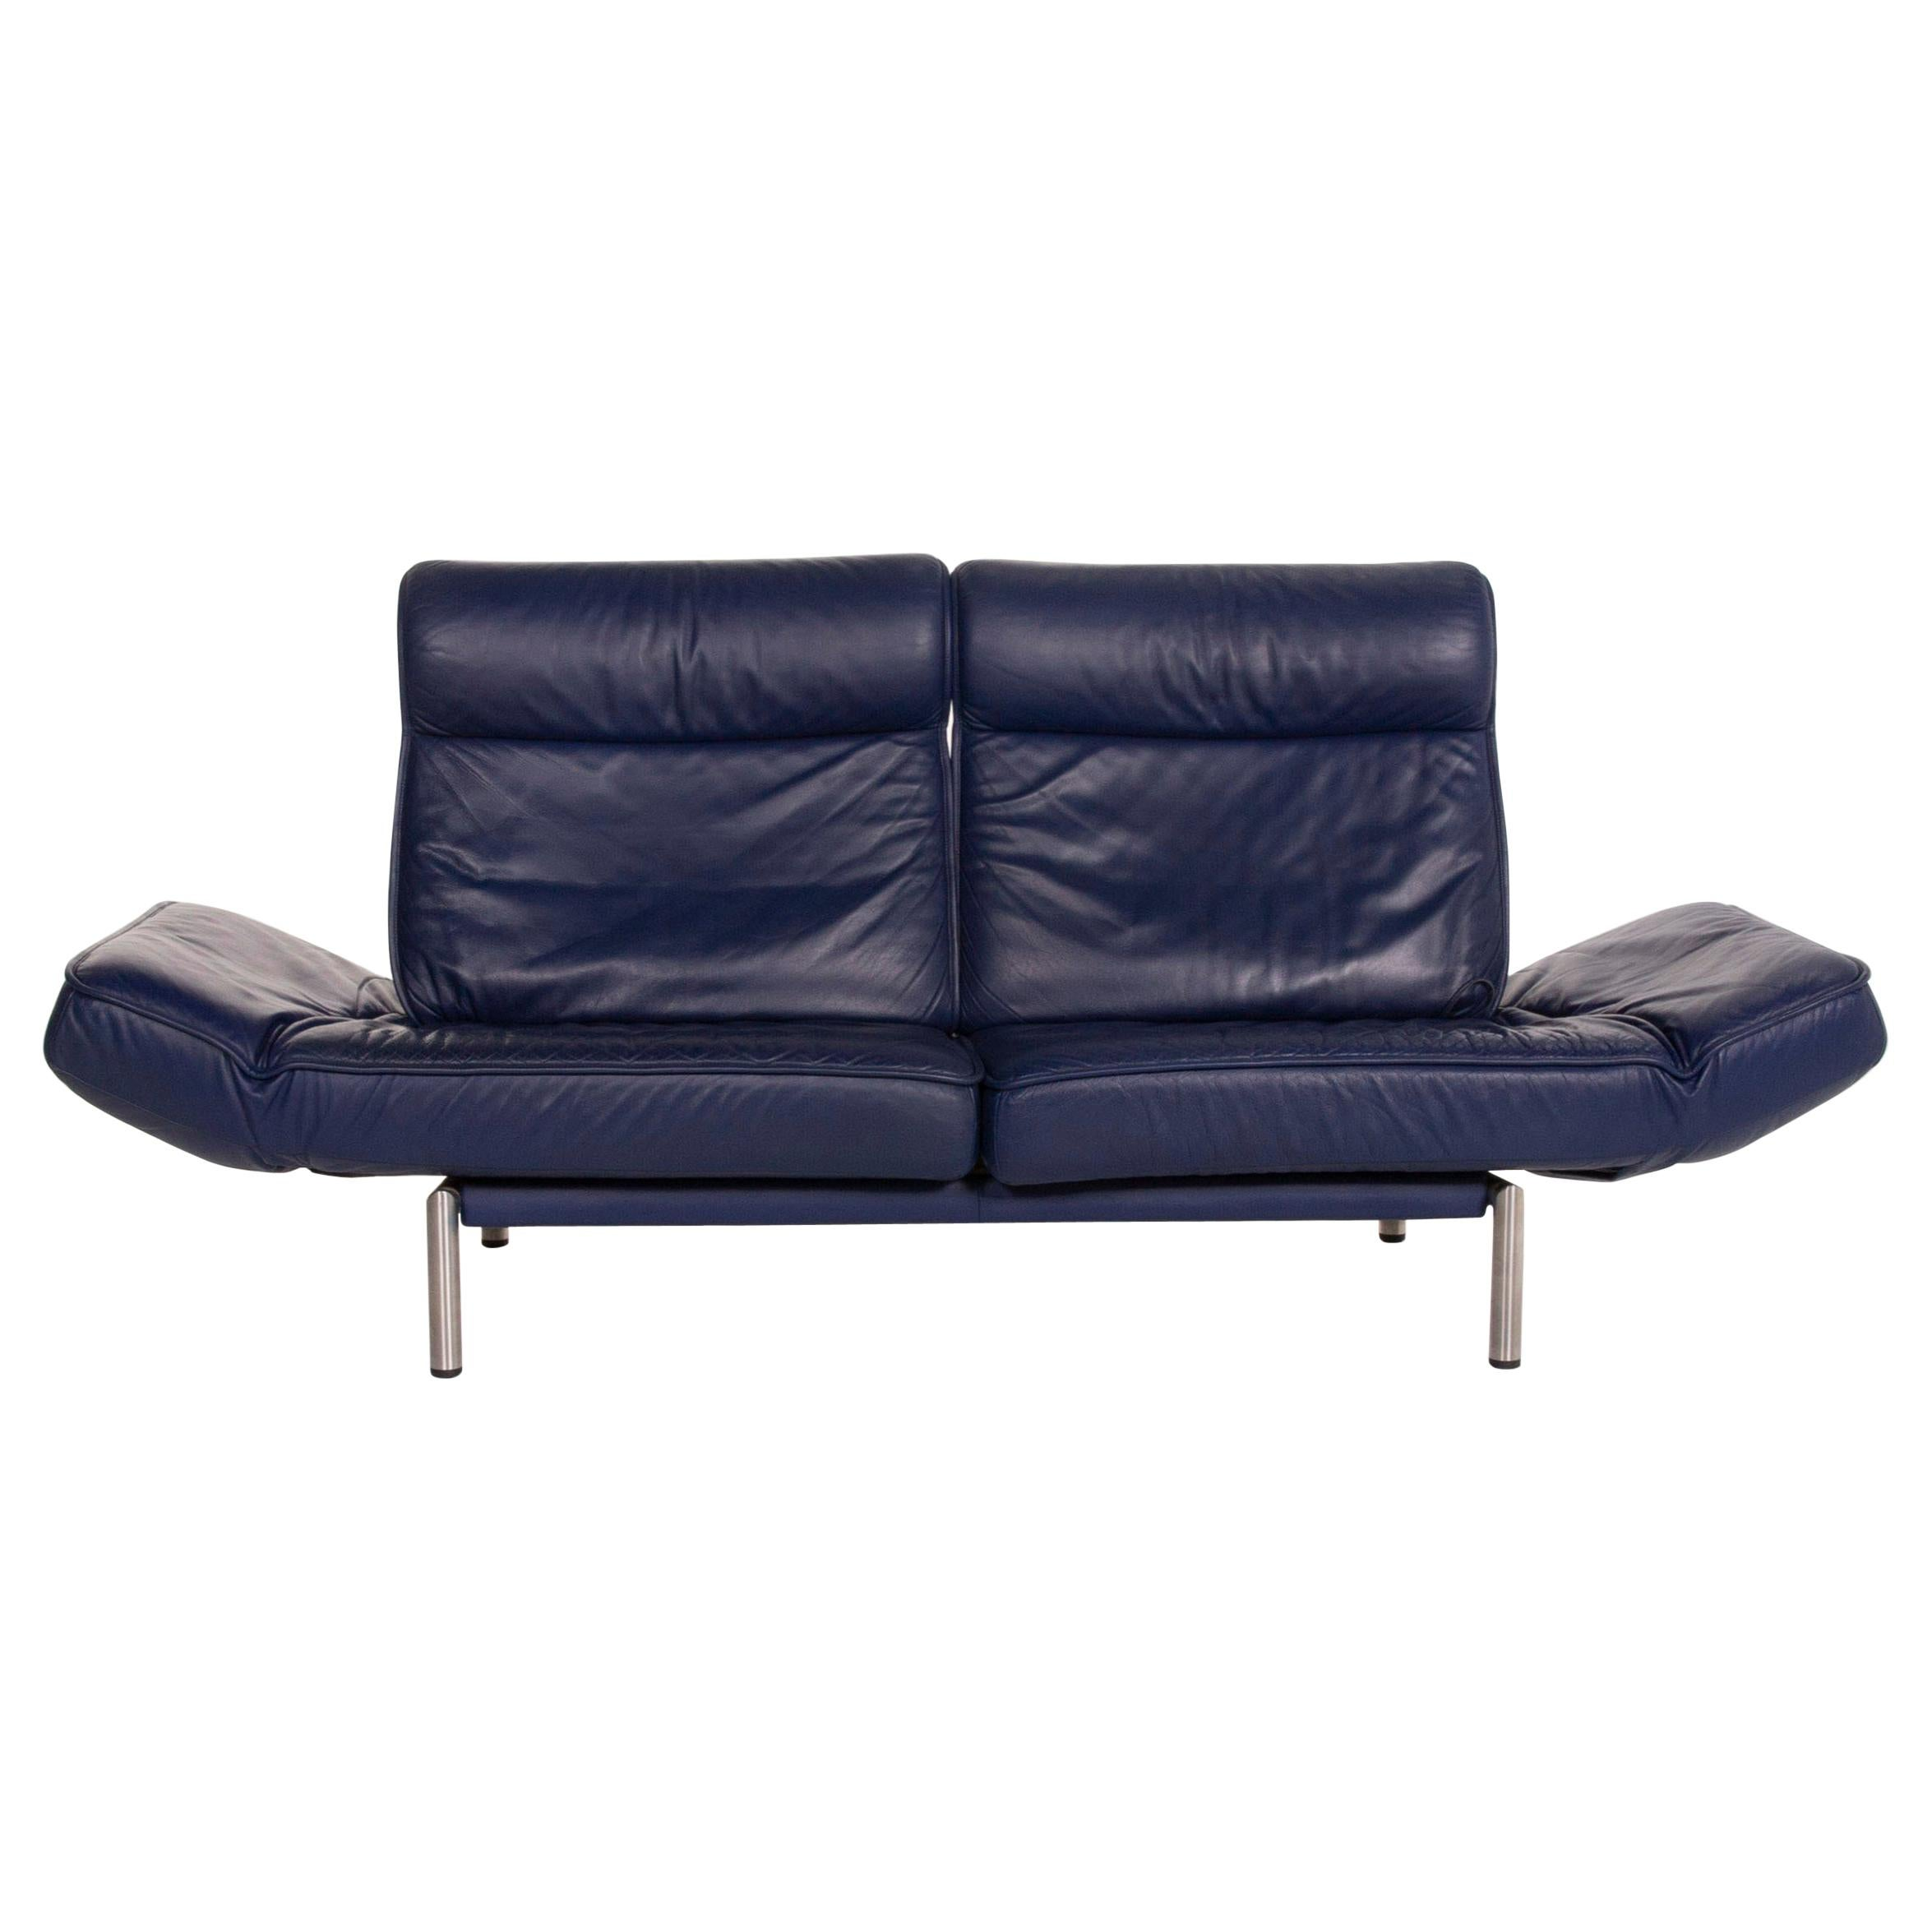 De Sede Ds 450 Leather Sofa Blue Two-Seat Function